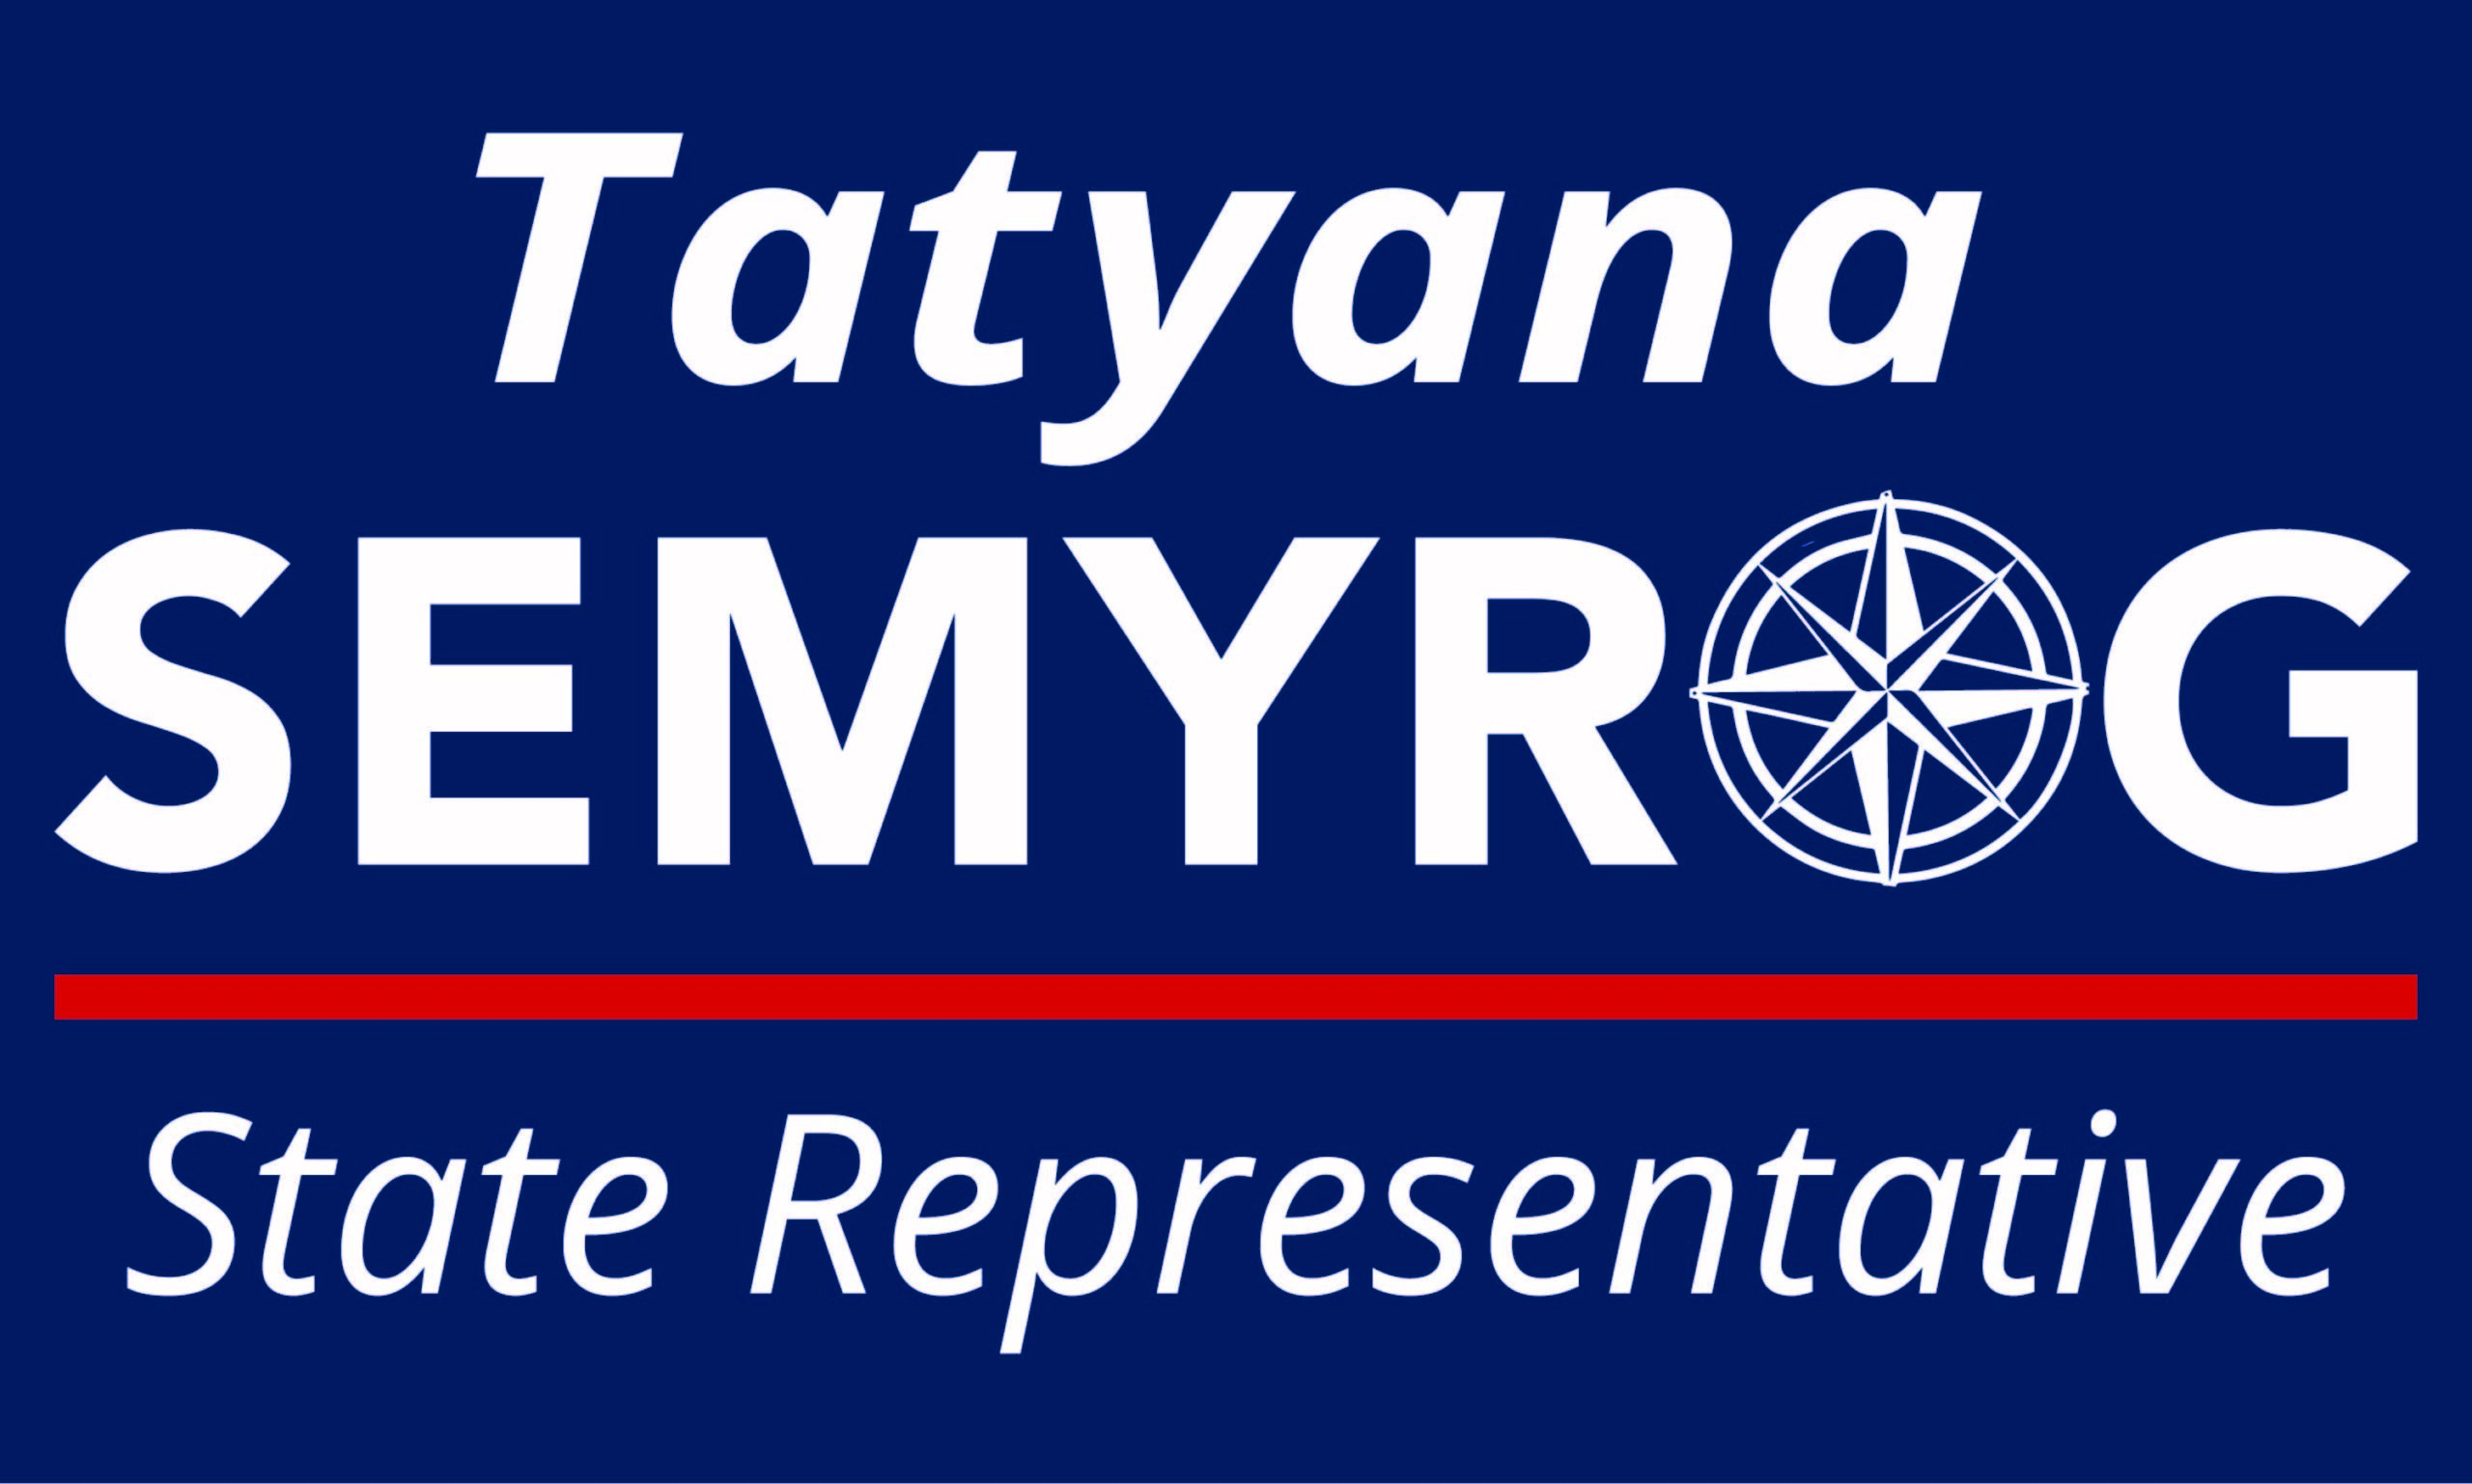 Tatyana Semyrog for State Representative